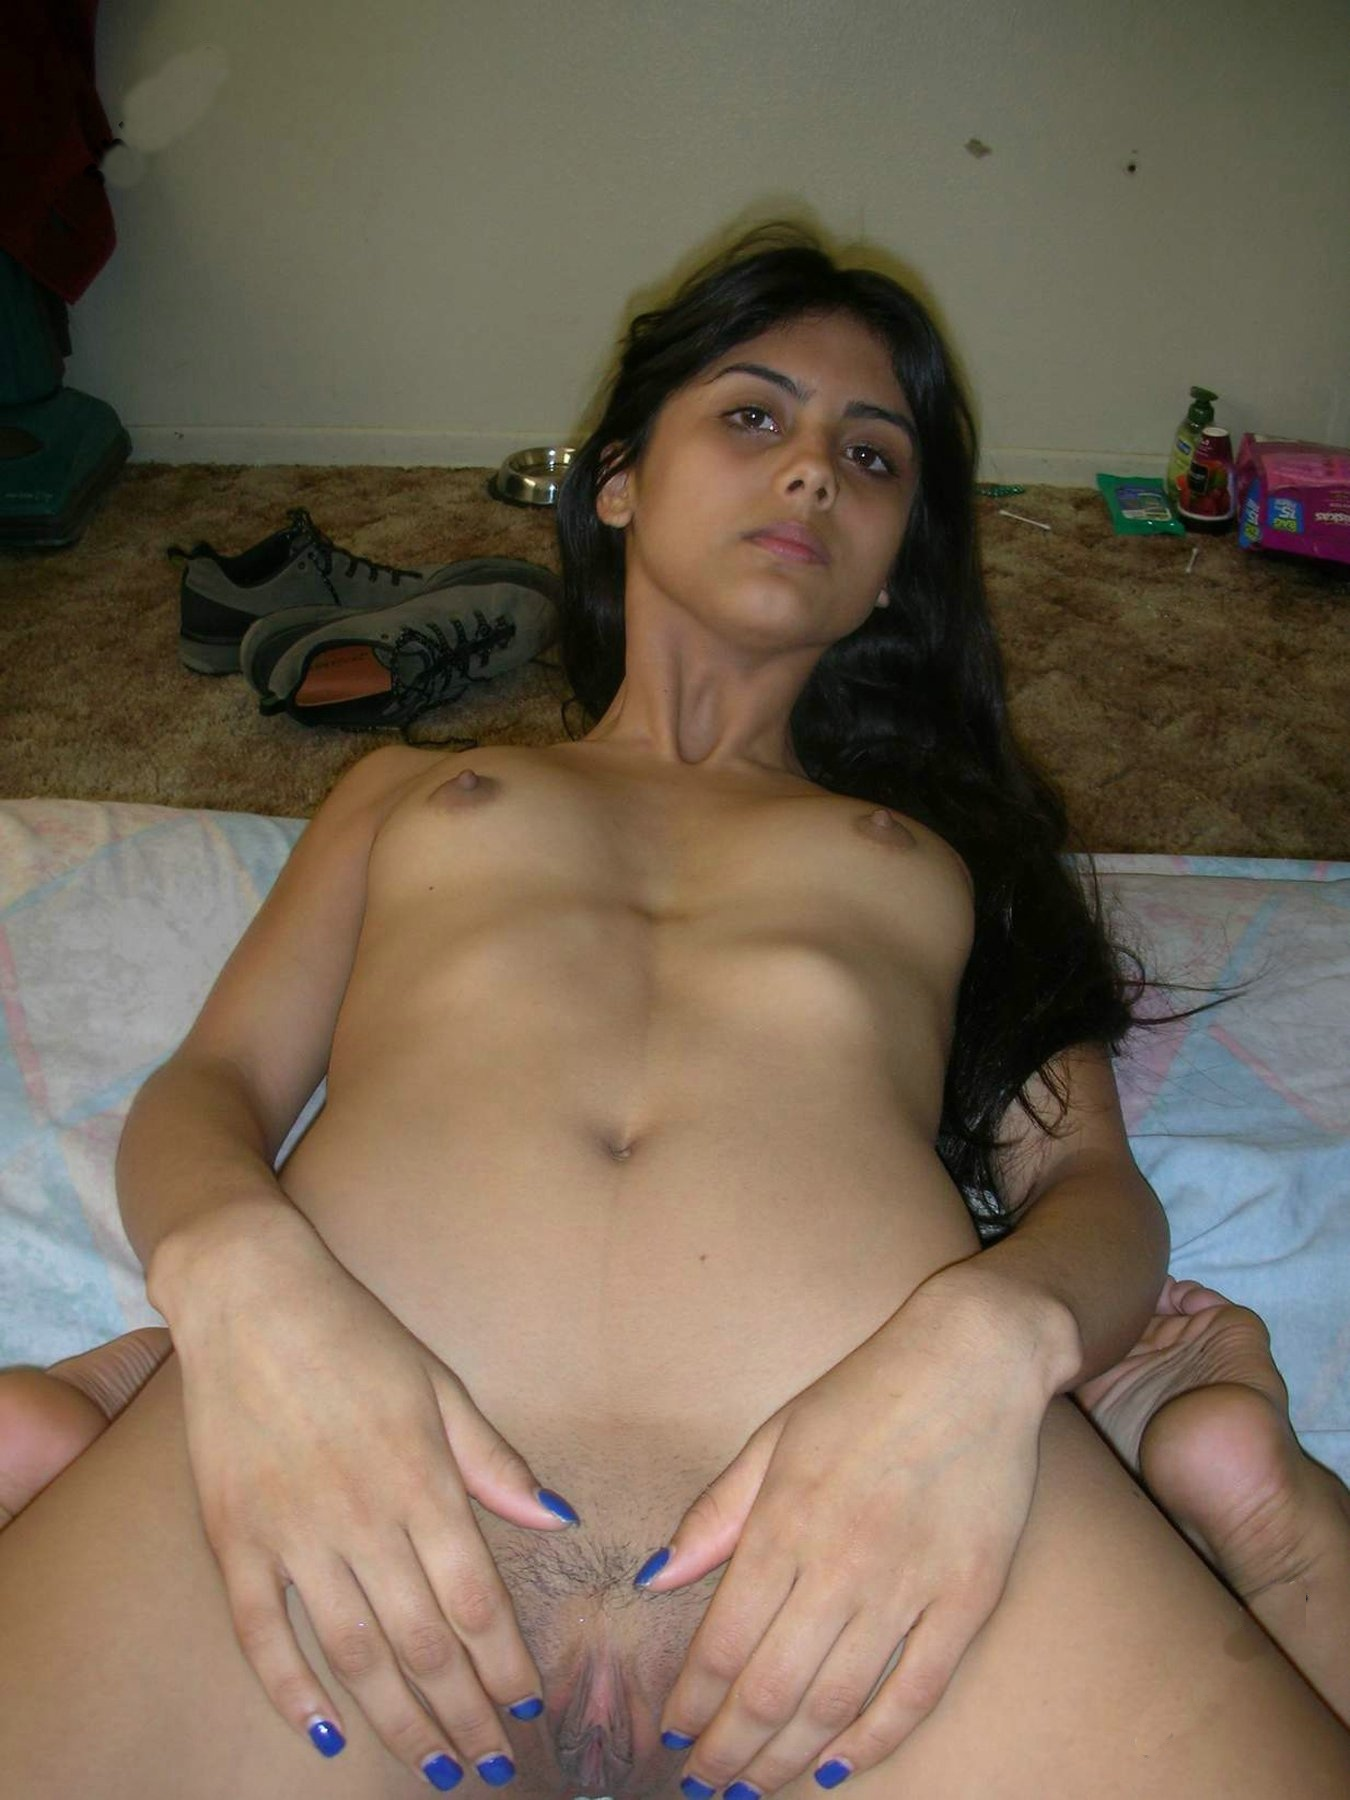 desi college girl sex hardcore fucked boobs vagina